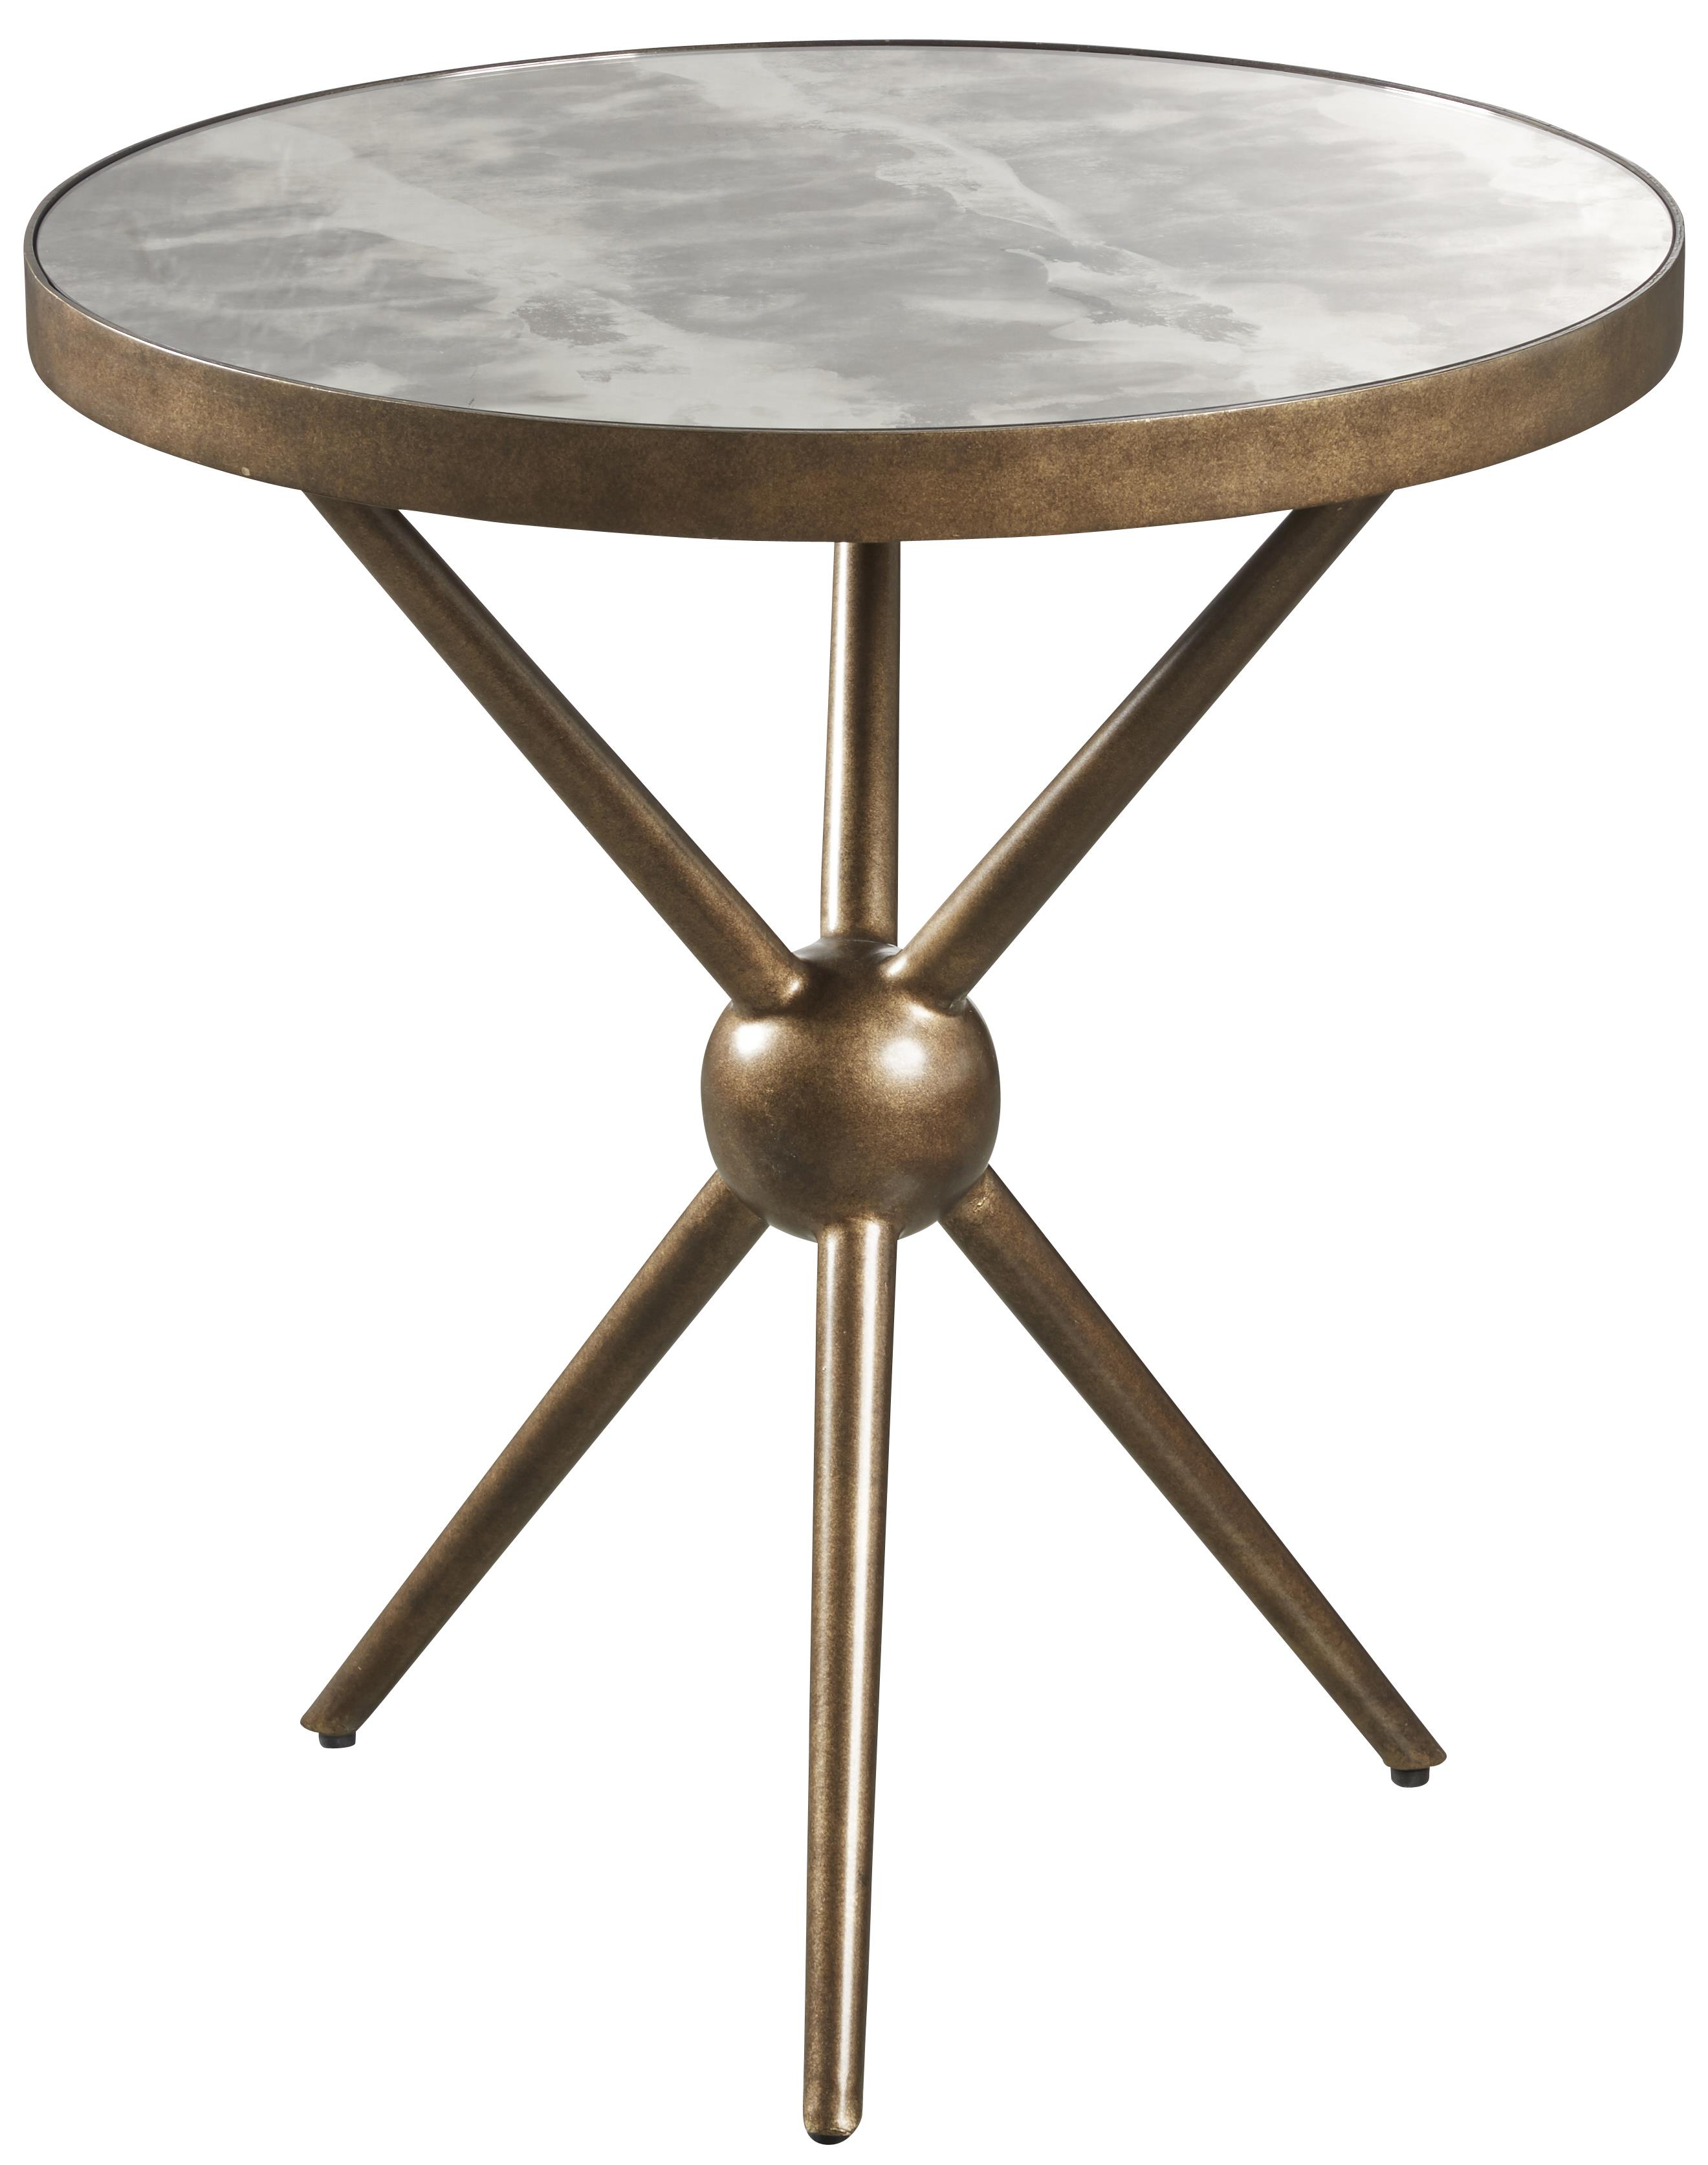 Belfort Signature Urban Treasures 14th and U Round End Table - Item Number: 223305-1250